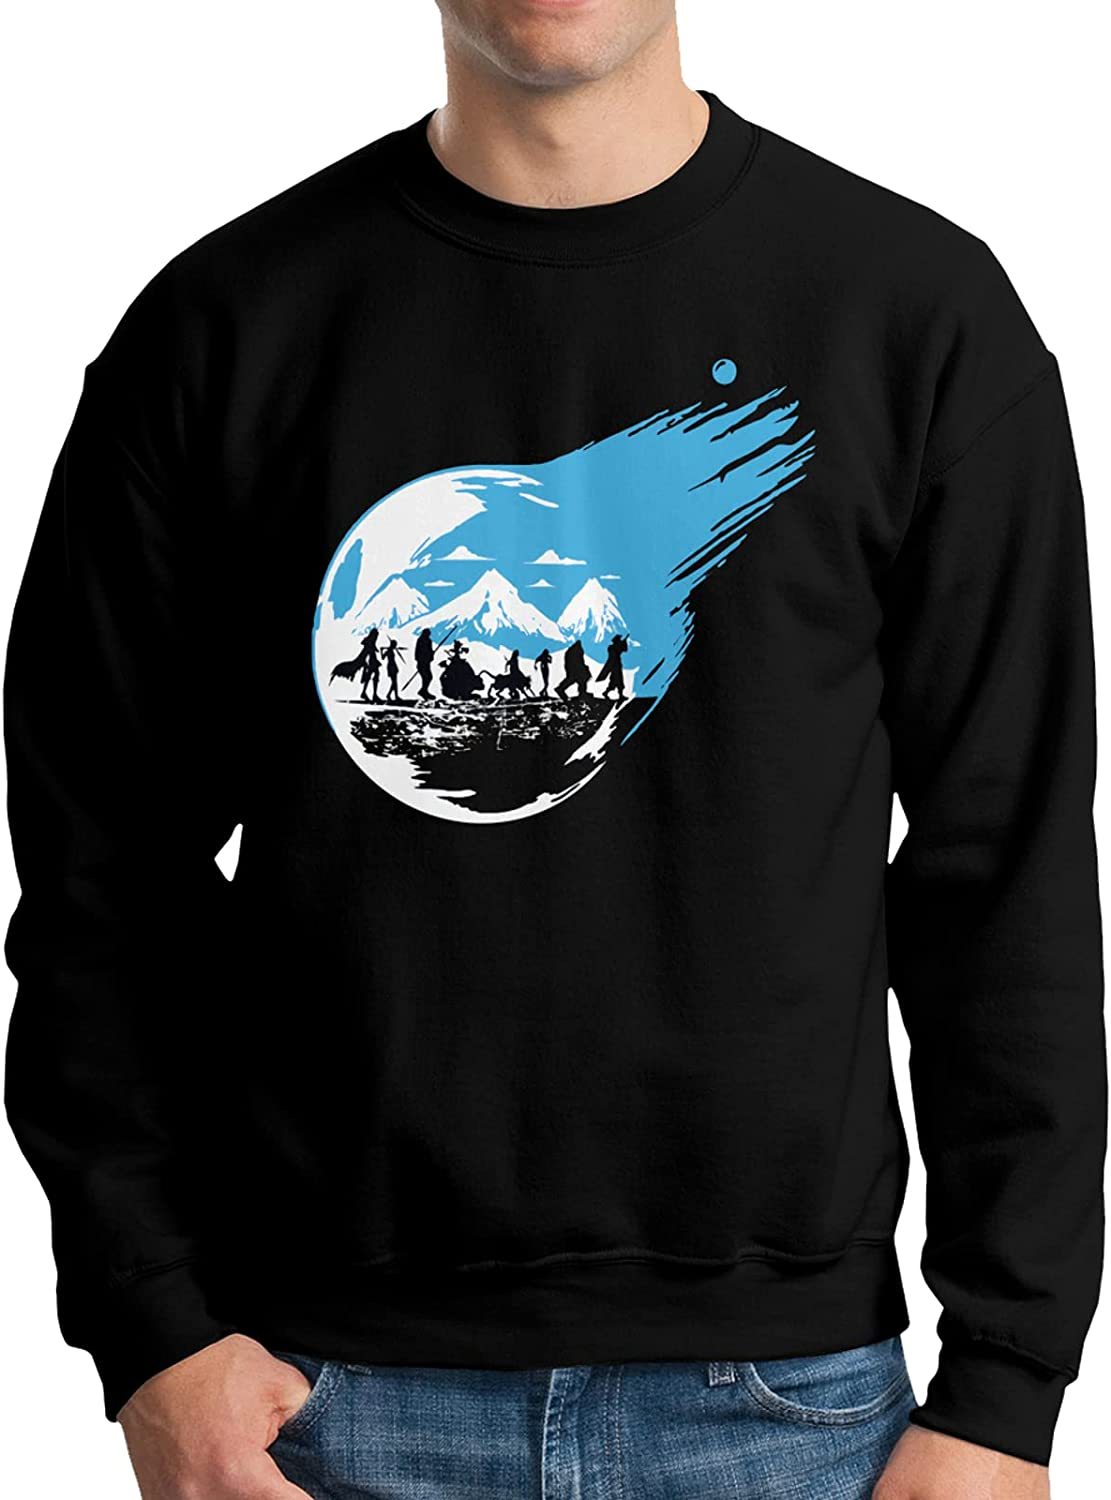 Final Fantasy Hoodie Man'S Limited time trial price Round Neck Sweater Sleeve Sale Sweats Long